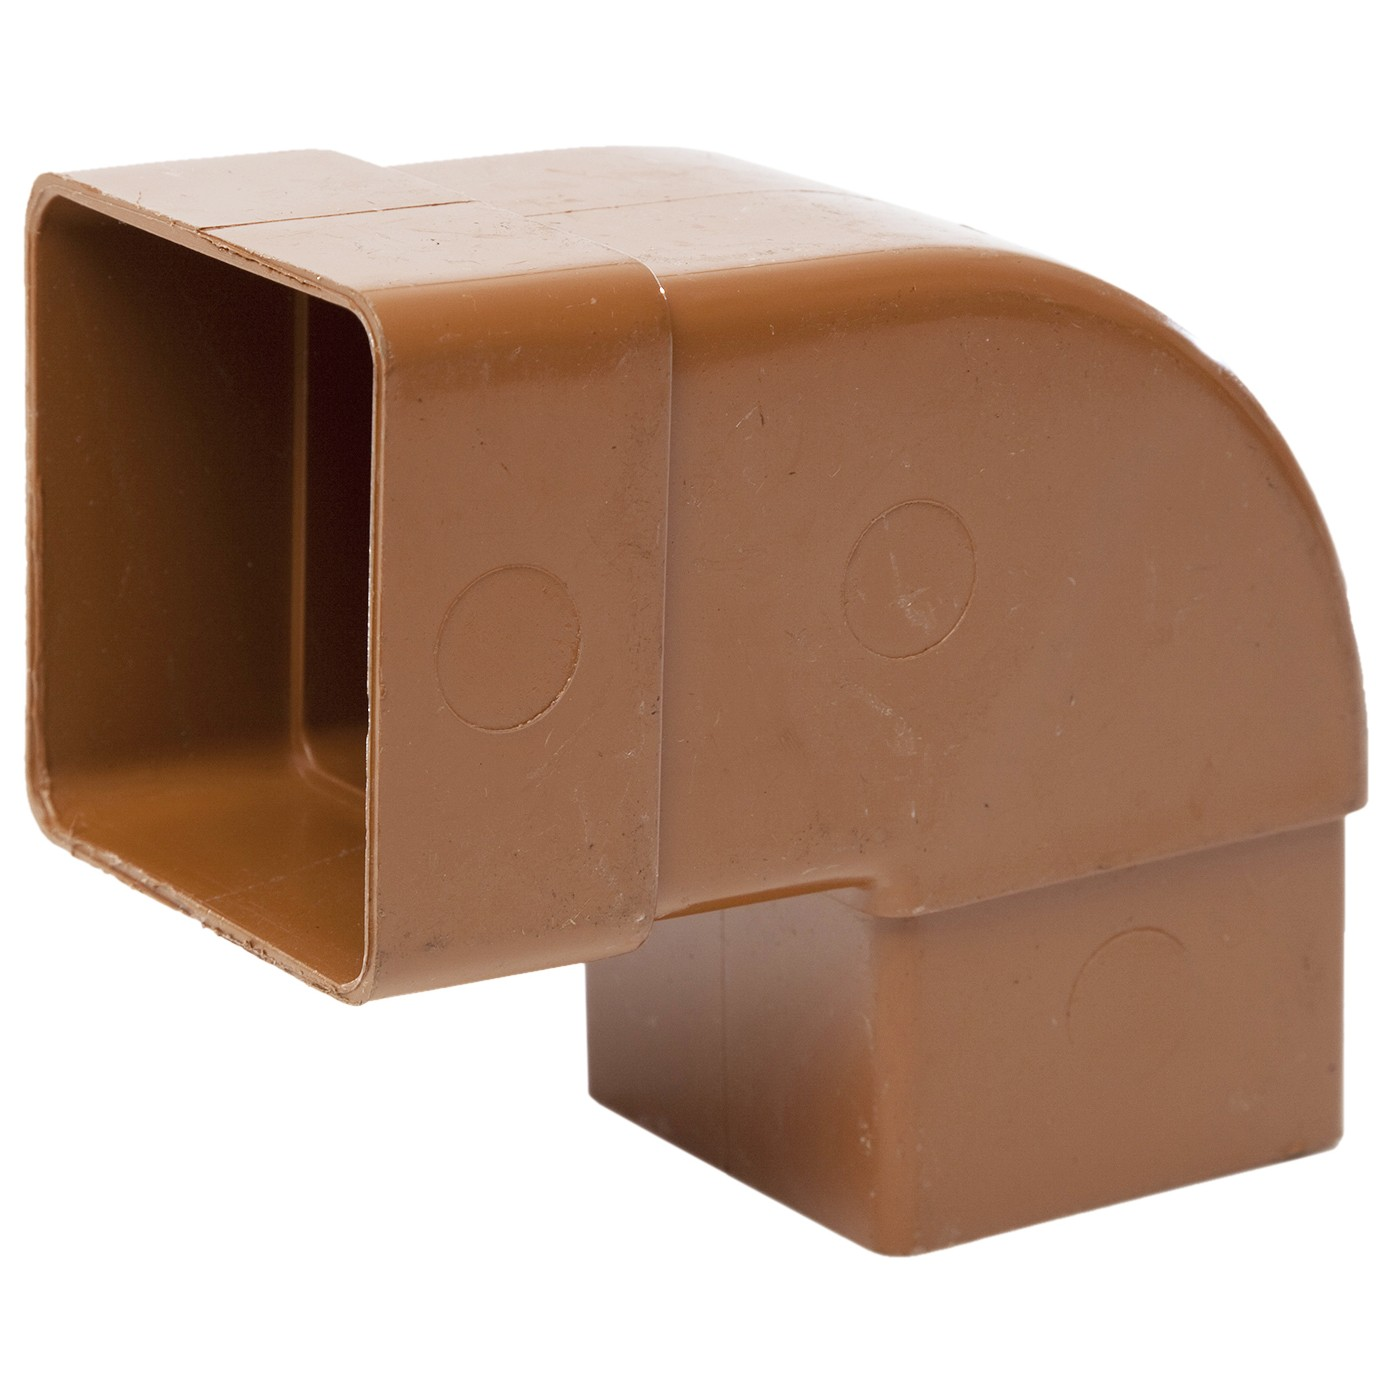 Polypipe 65mm Square Down Pipe 92.5 Degree Offset Bend - Caramel